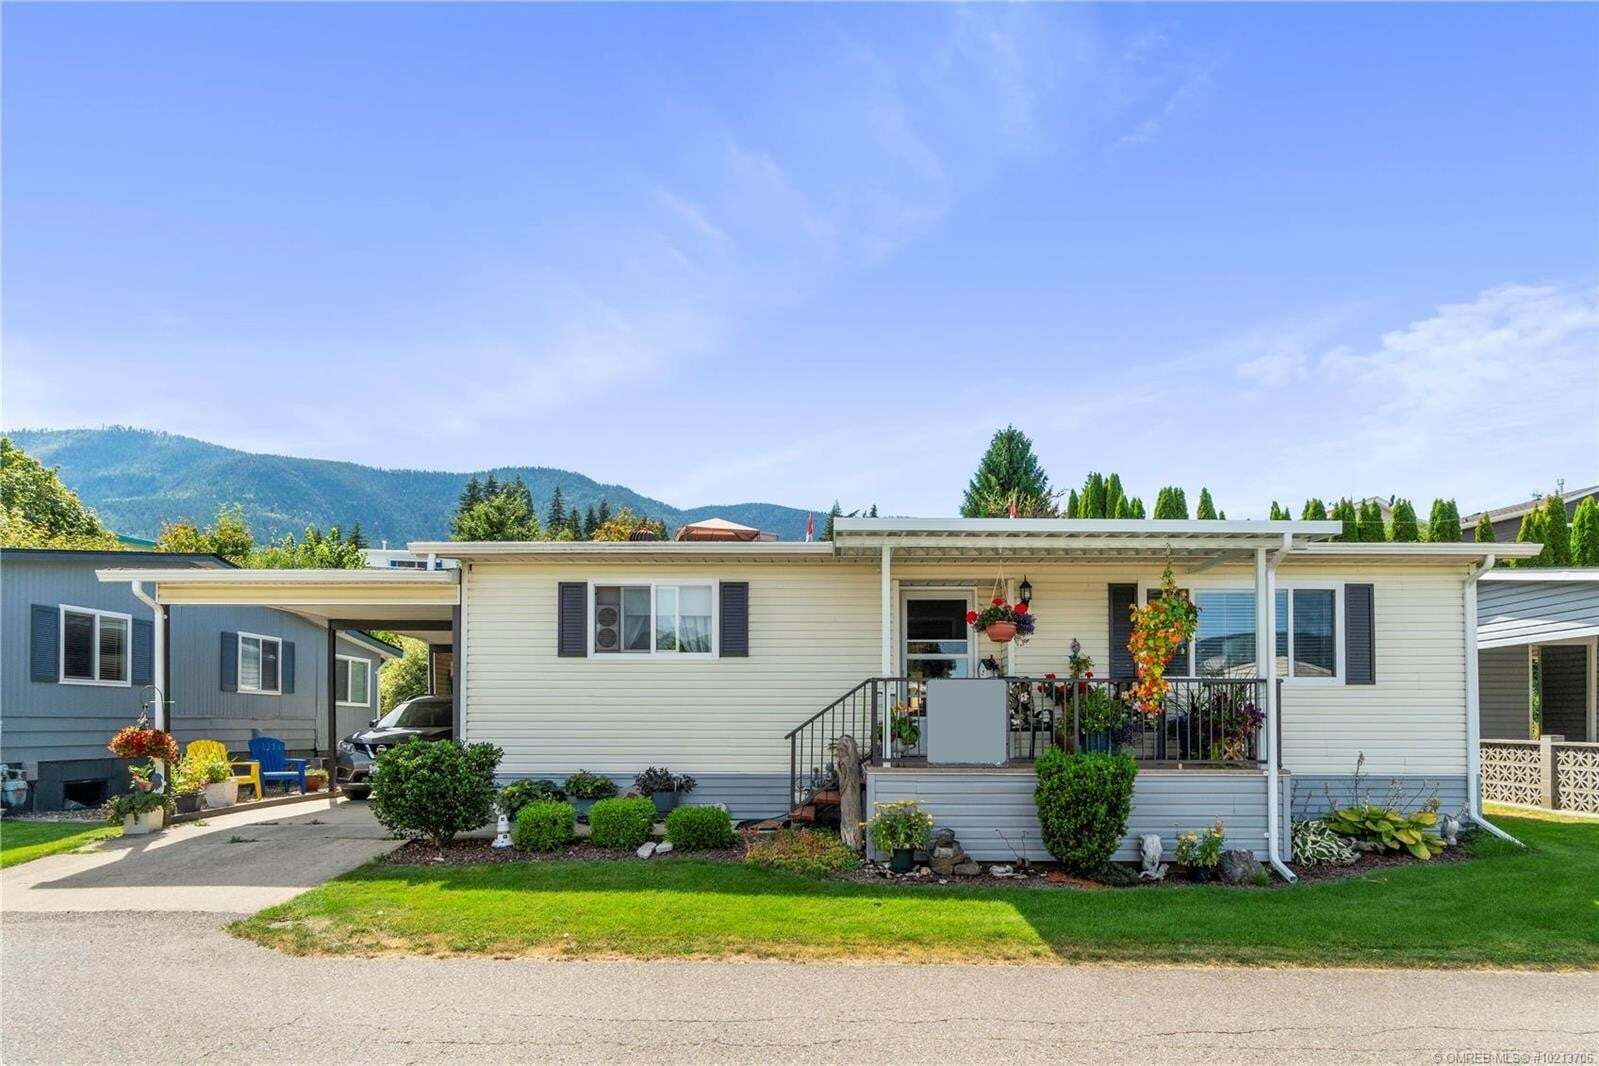 Home for sale at 2932 Buckley Rd Unit 61 Sorrento British Columbia - MLS: 10213706